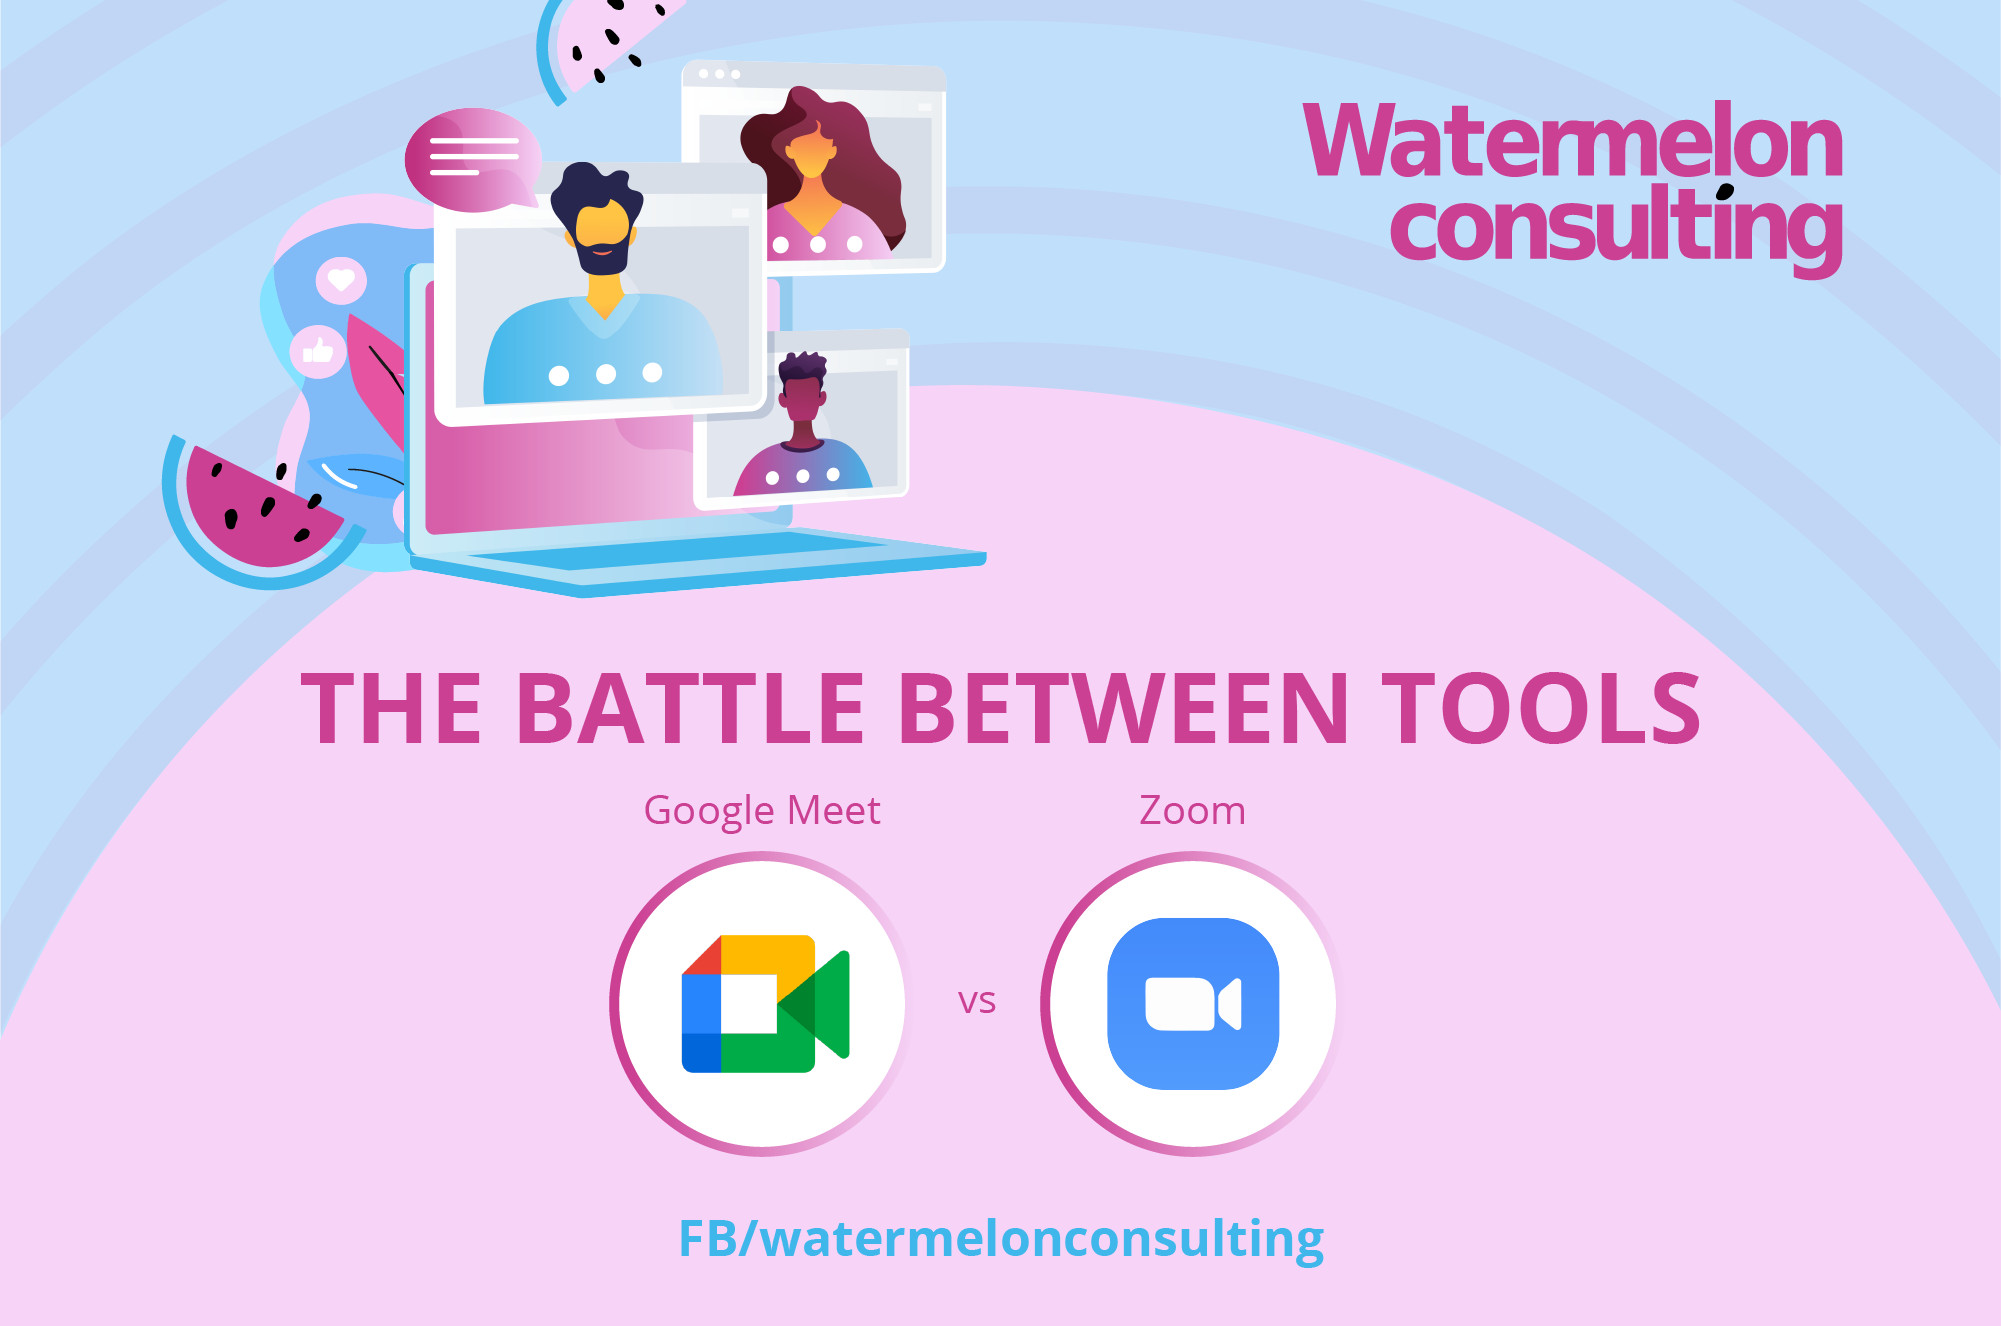 Google Meet vs Zoom: What is your choice?